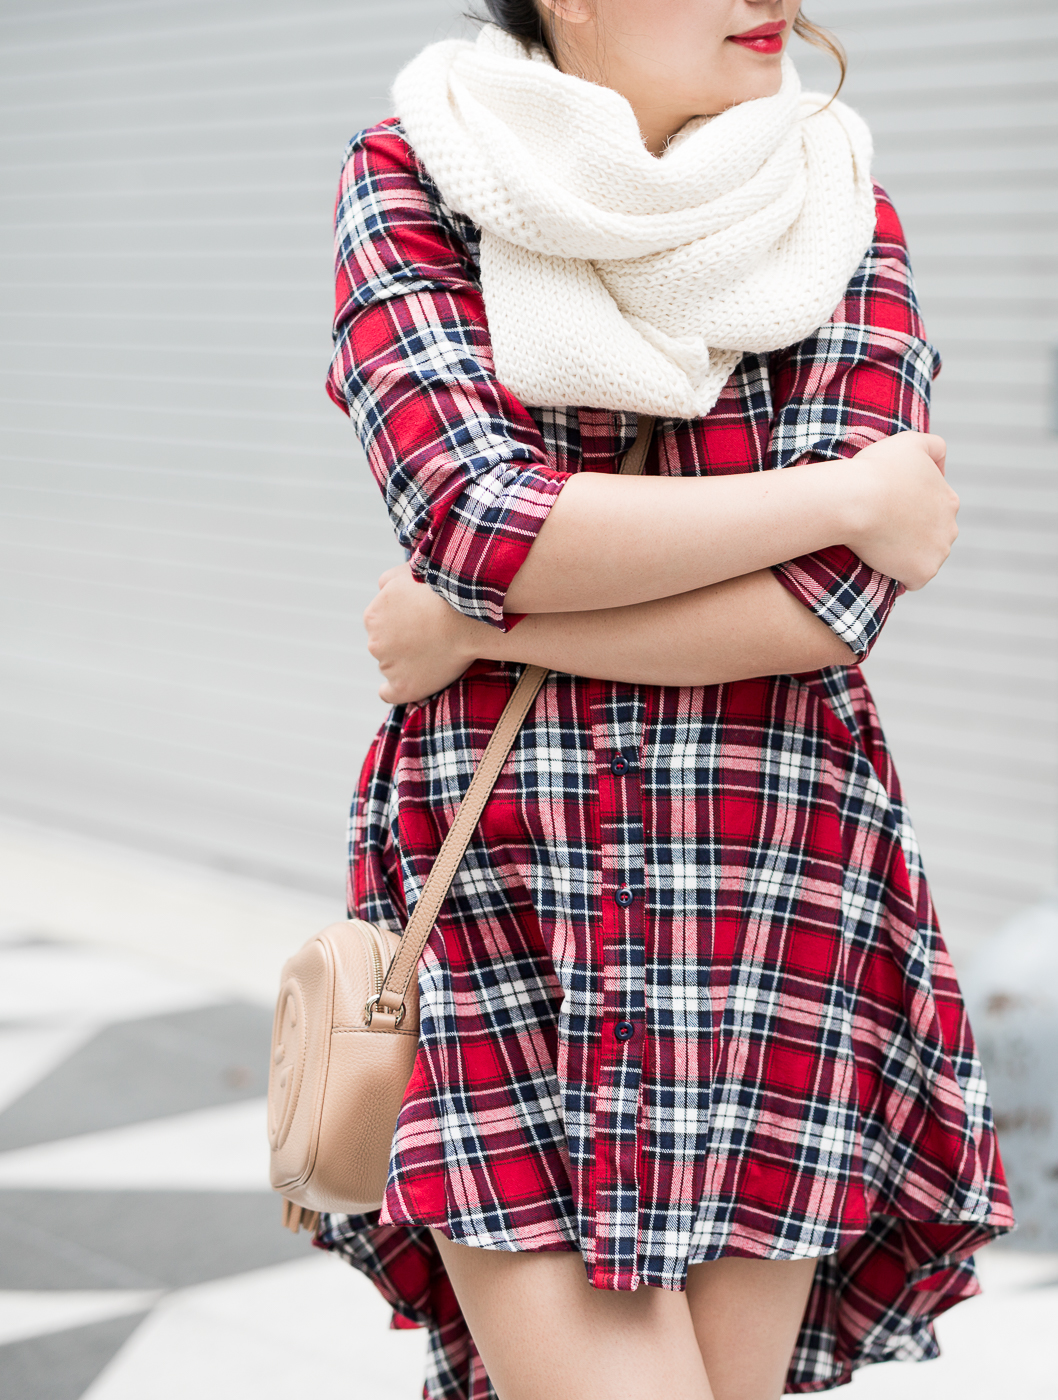 PrettyLittleThing Ruffle Check Shirt Dress & Cuyana Baby Alpaca Infinity Scarf | The Chic Diary